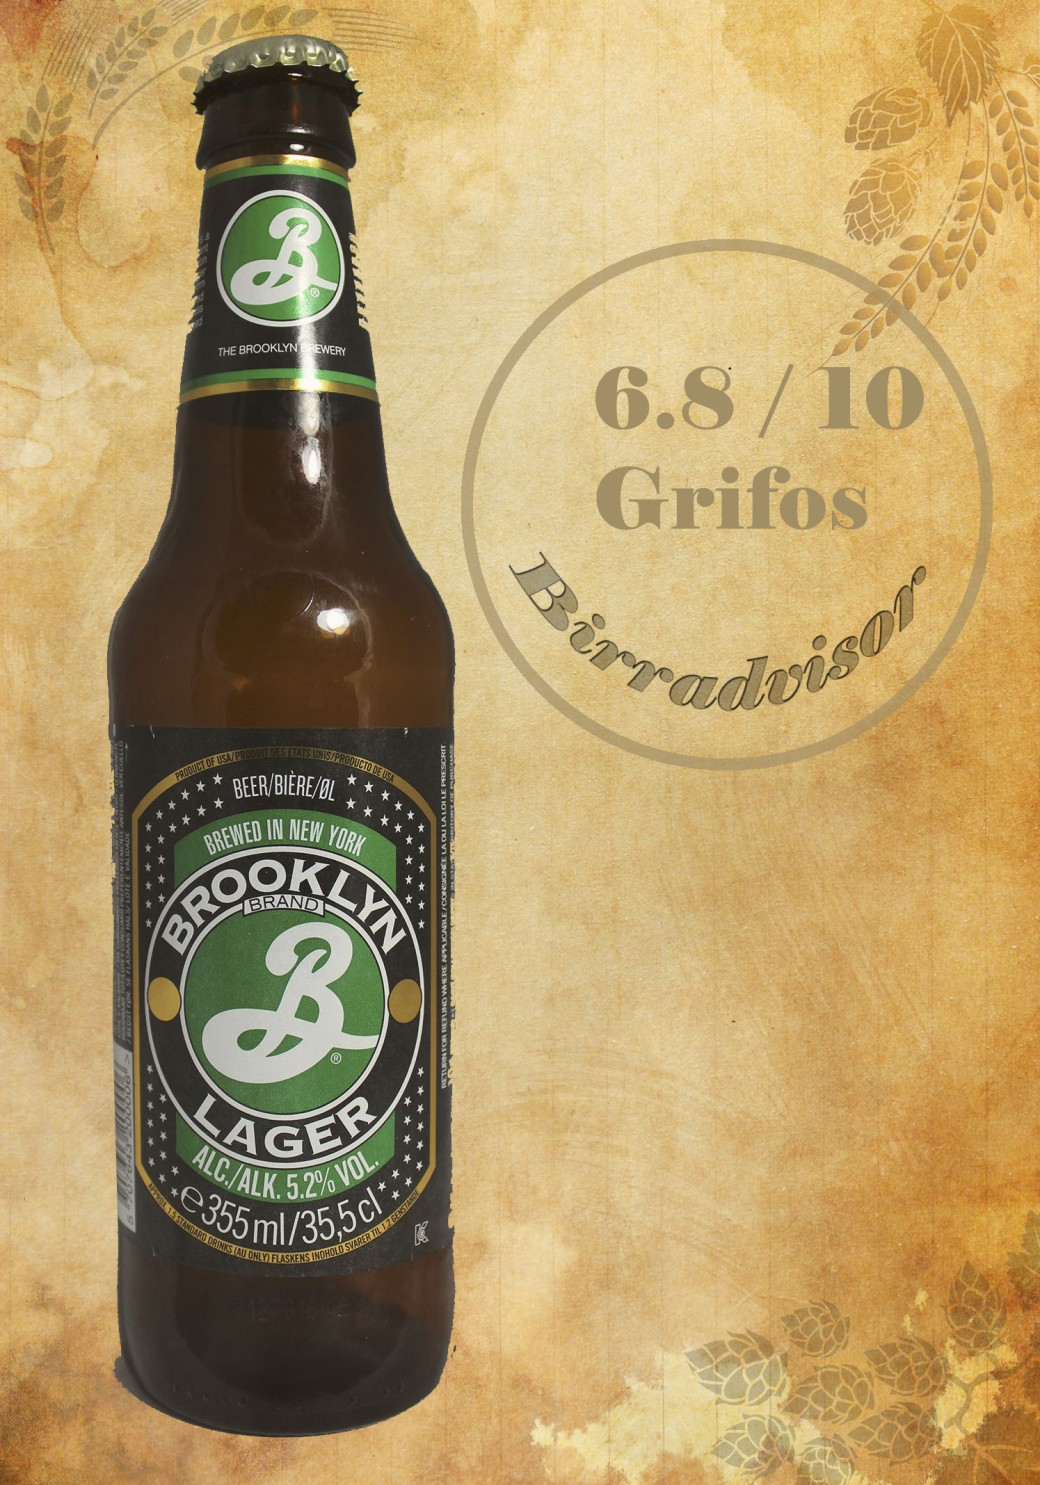 Brooklyn brand lager